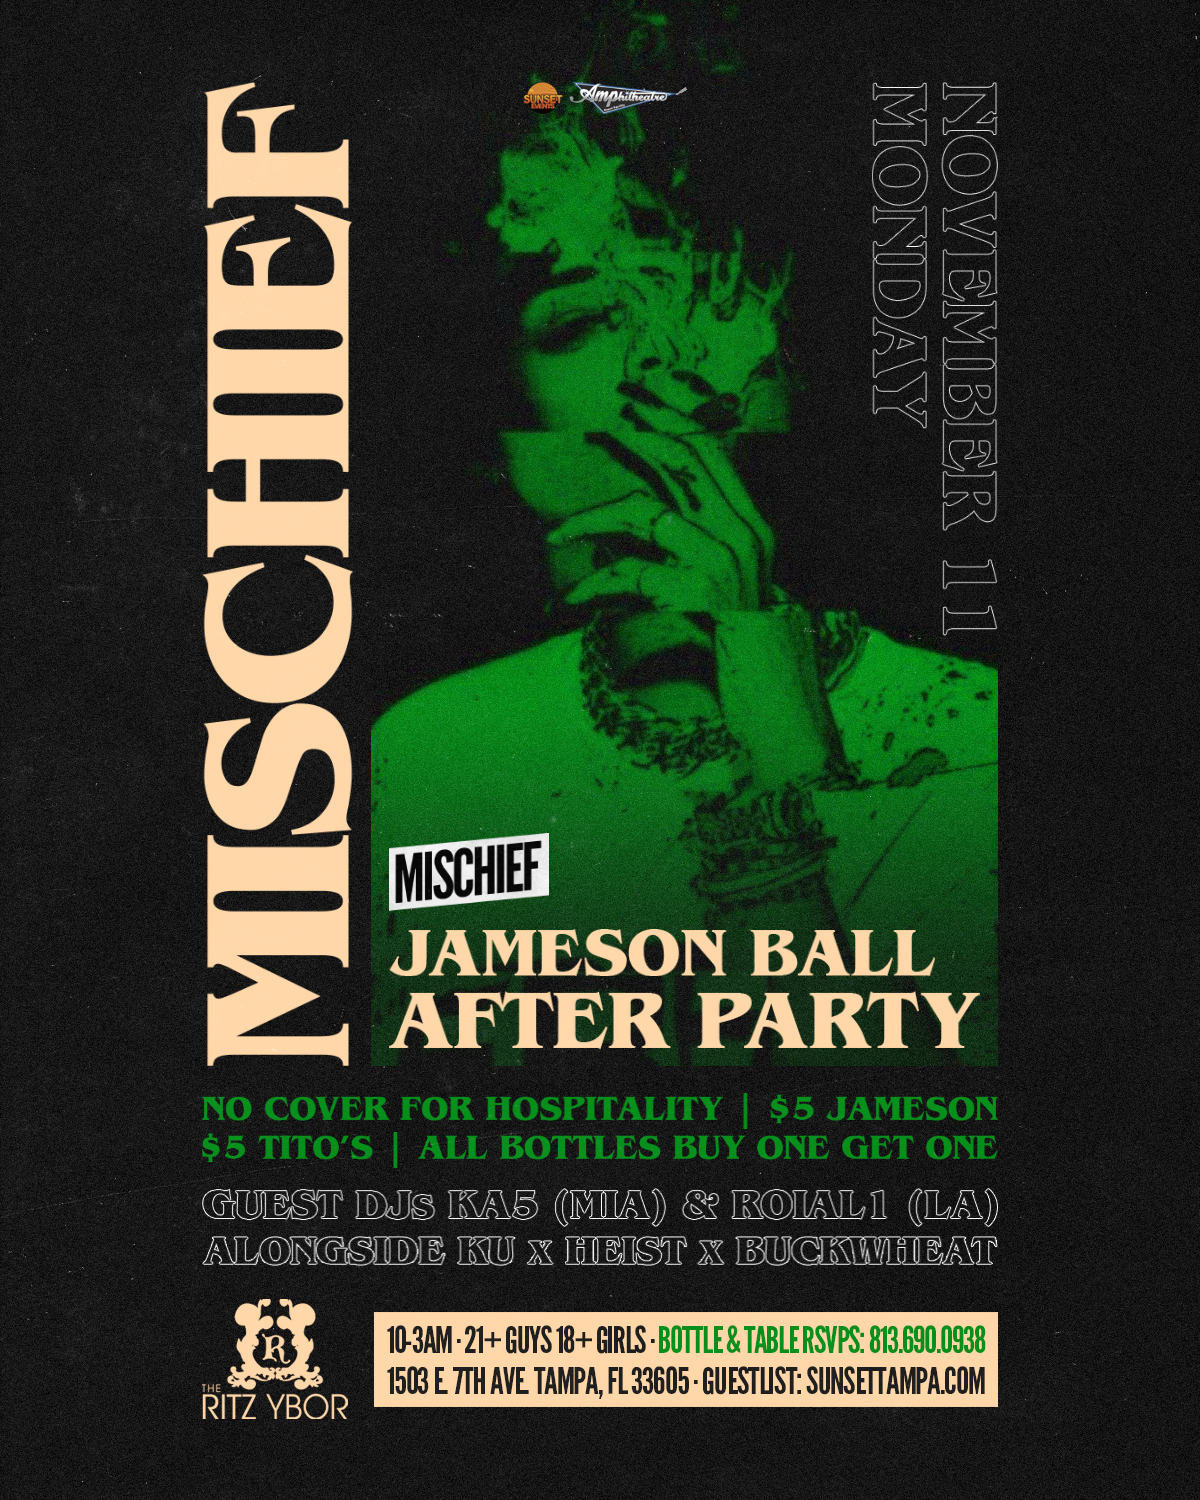 Mischief Mondays – Special Guests KA5 & ROIAL1 at The RITZ Ybor – 11/11/2019